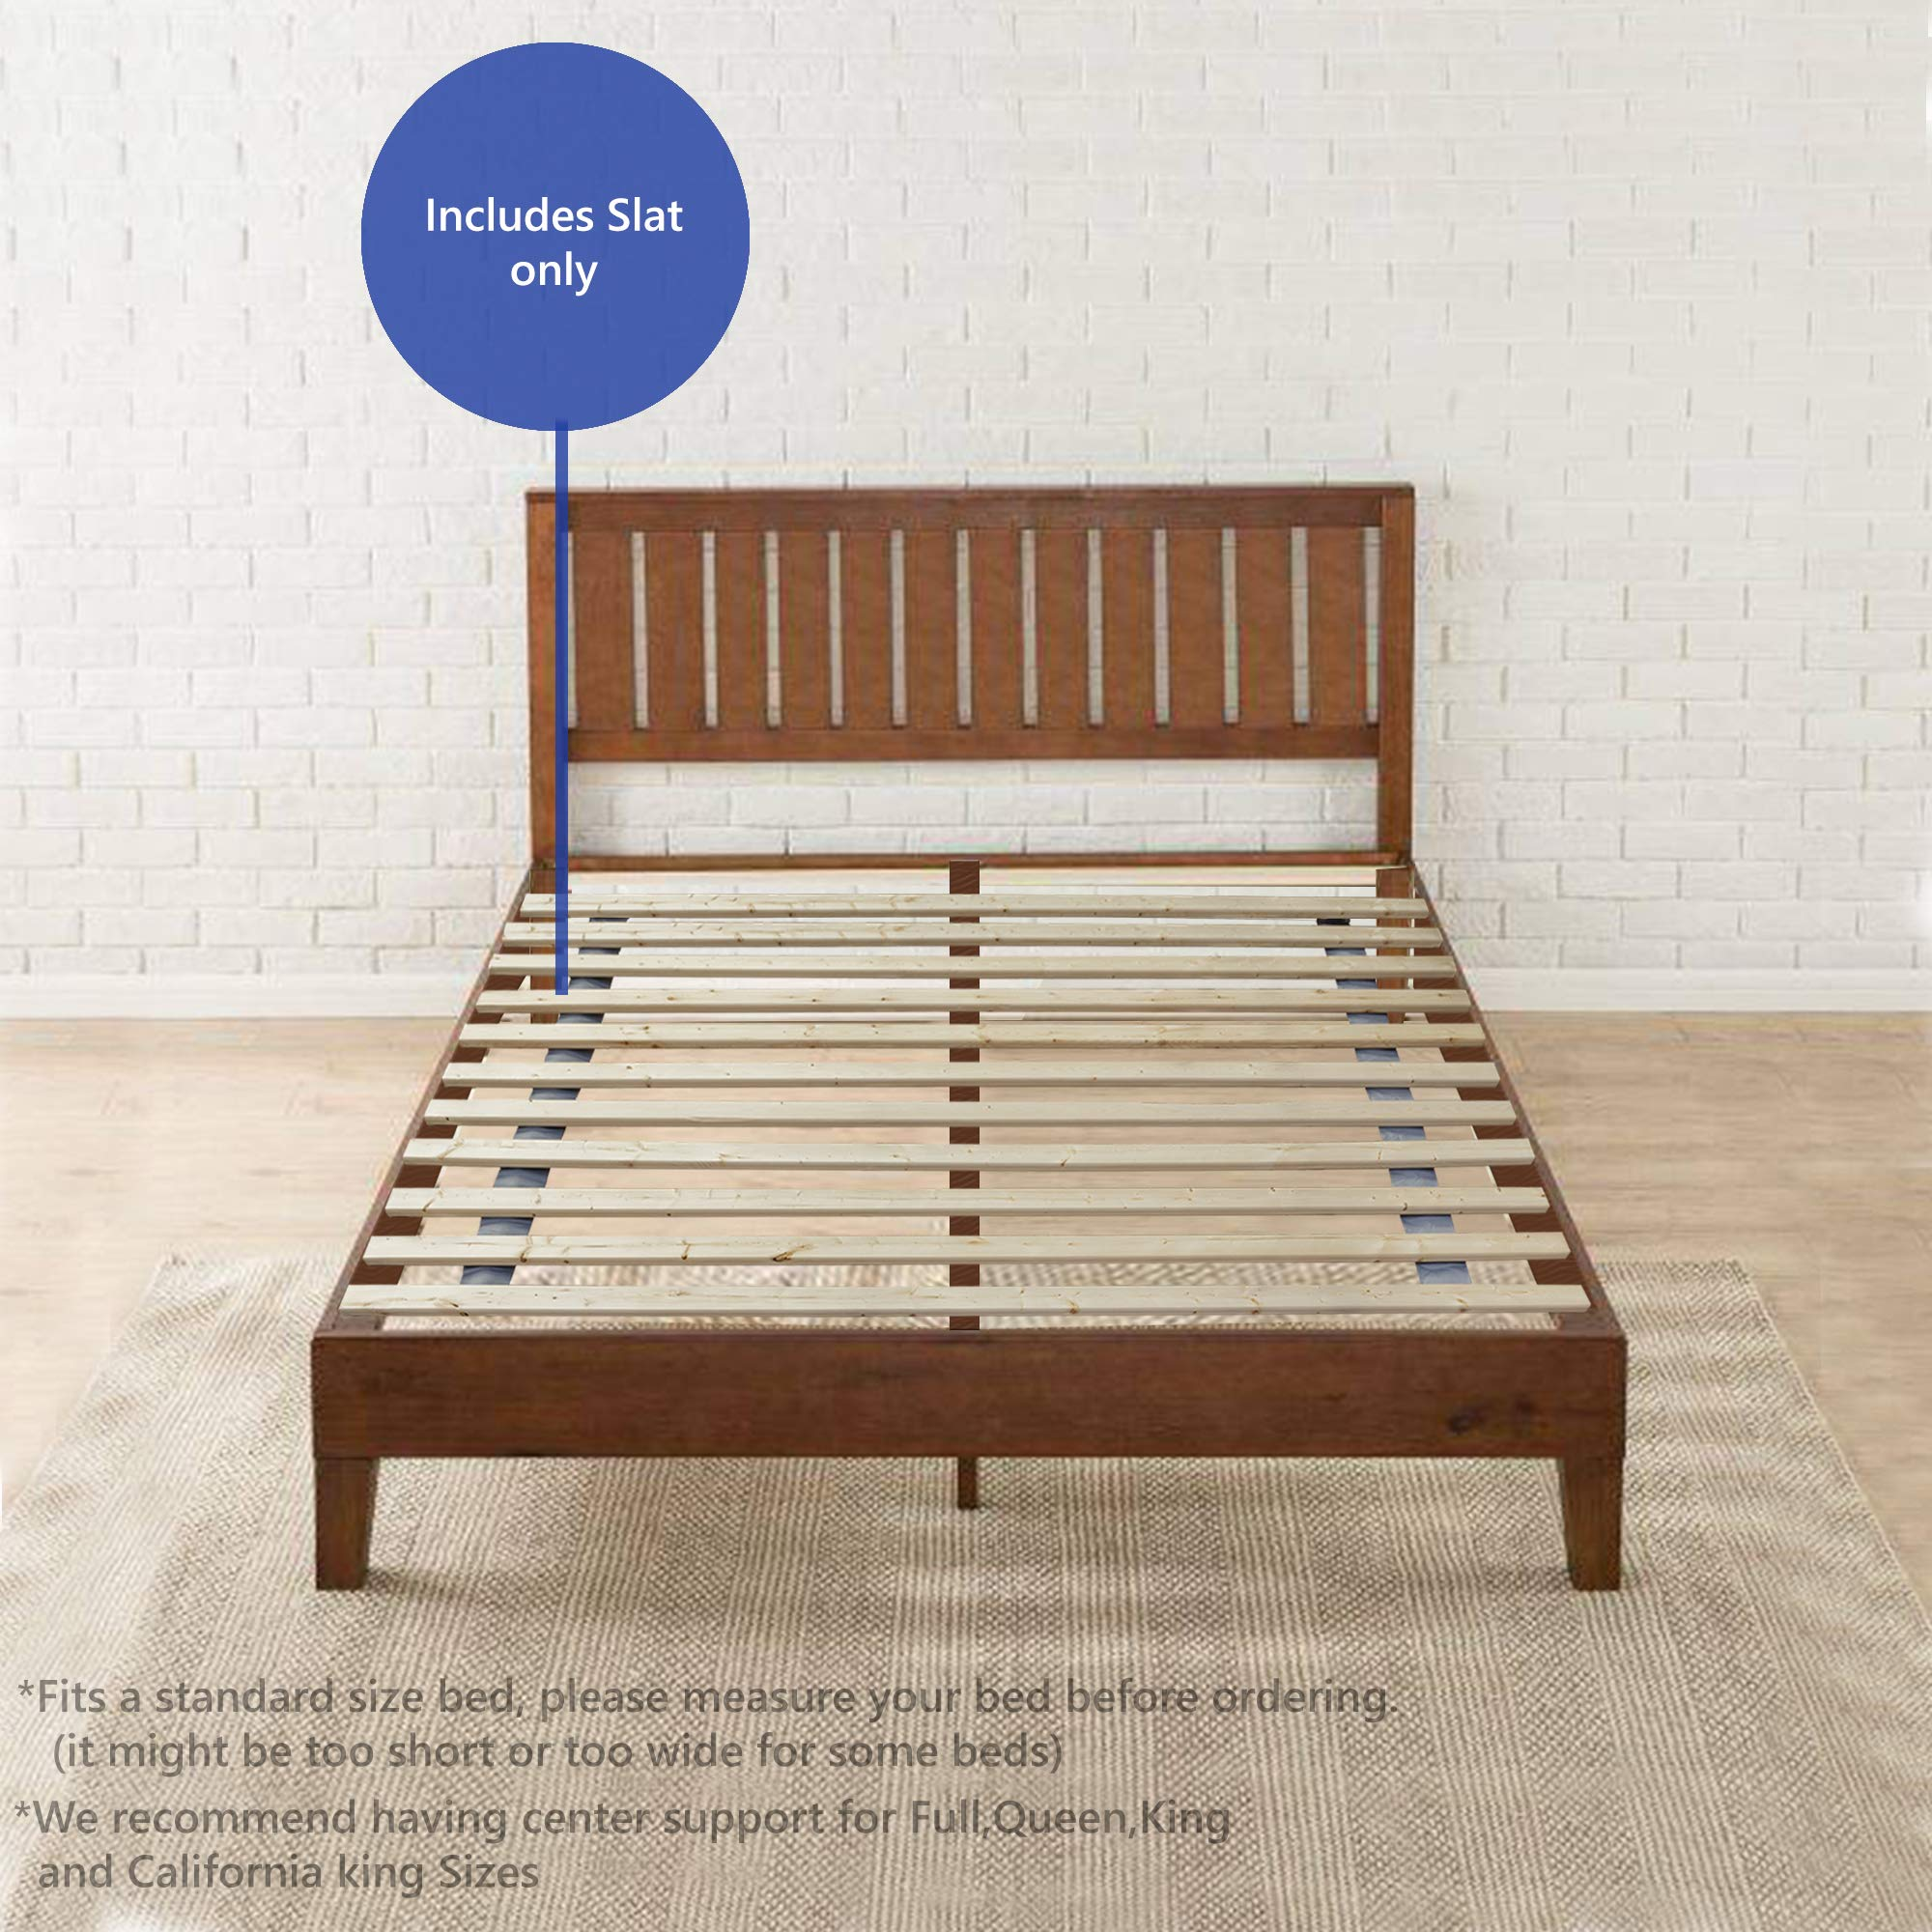 Mayton Twin Size Slats Solid Wood Bed Support Bunkie Board, 39x75 by Mayton